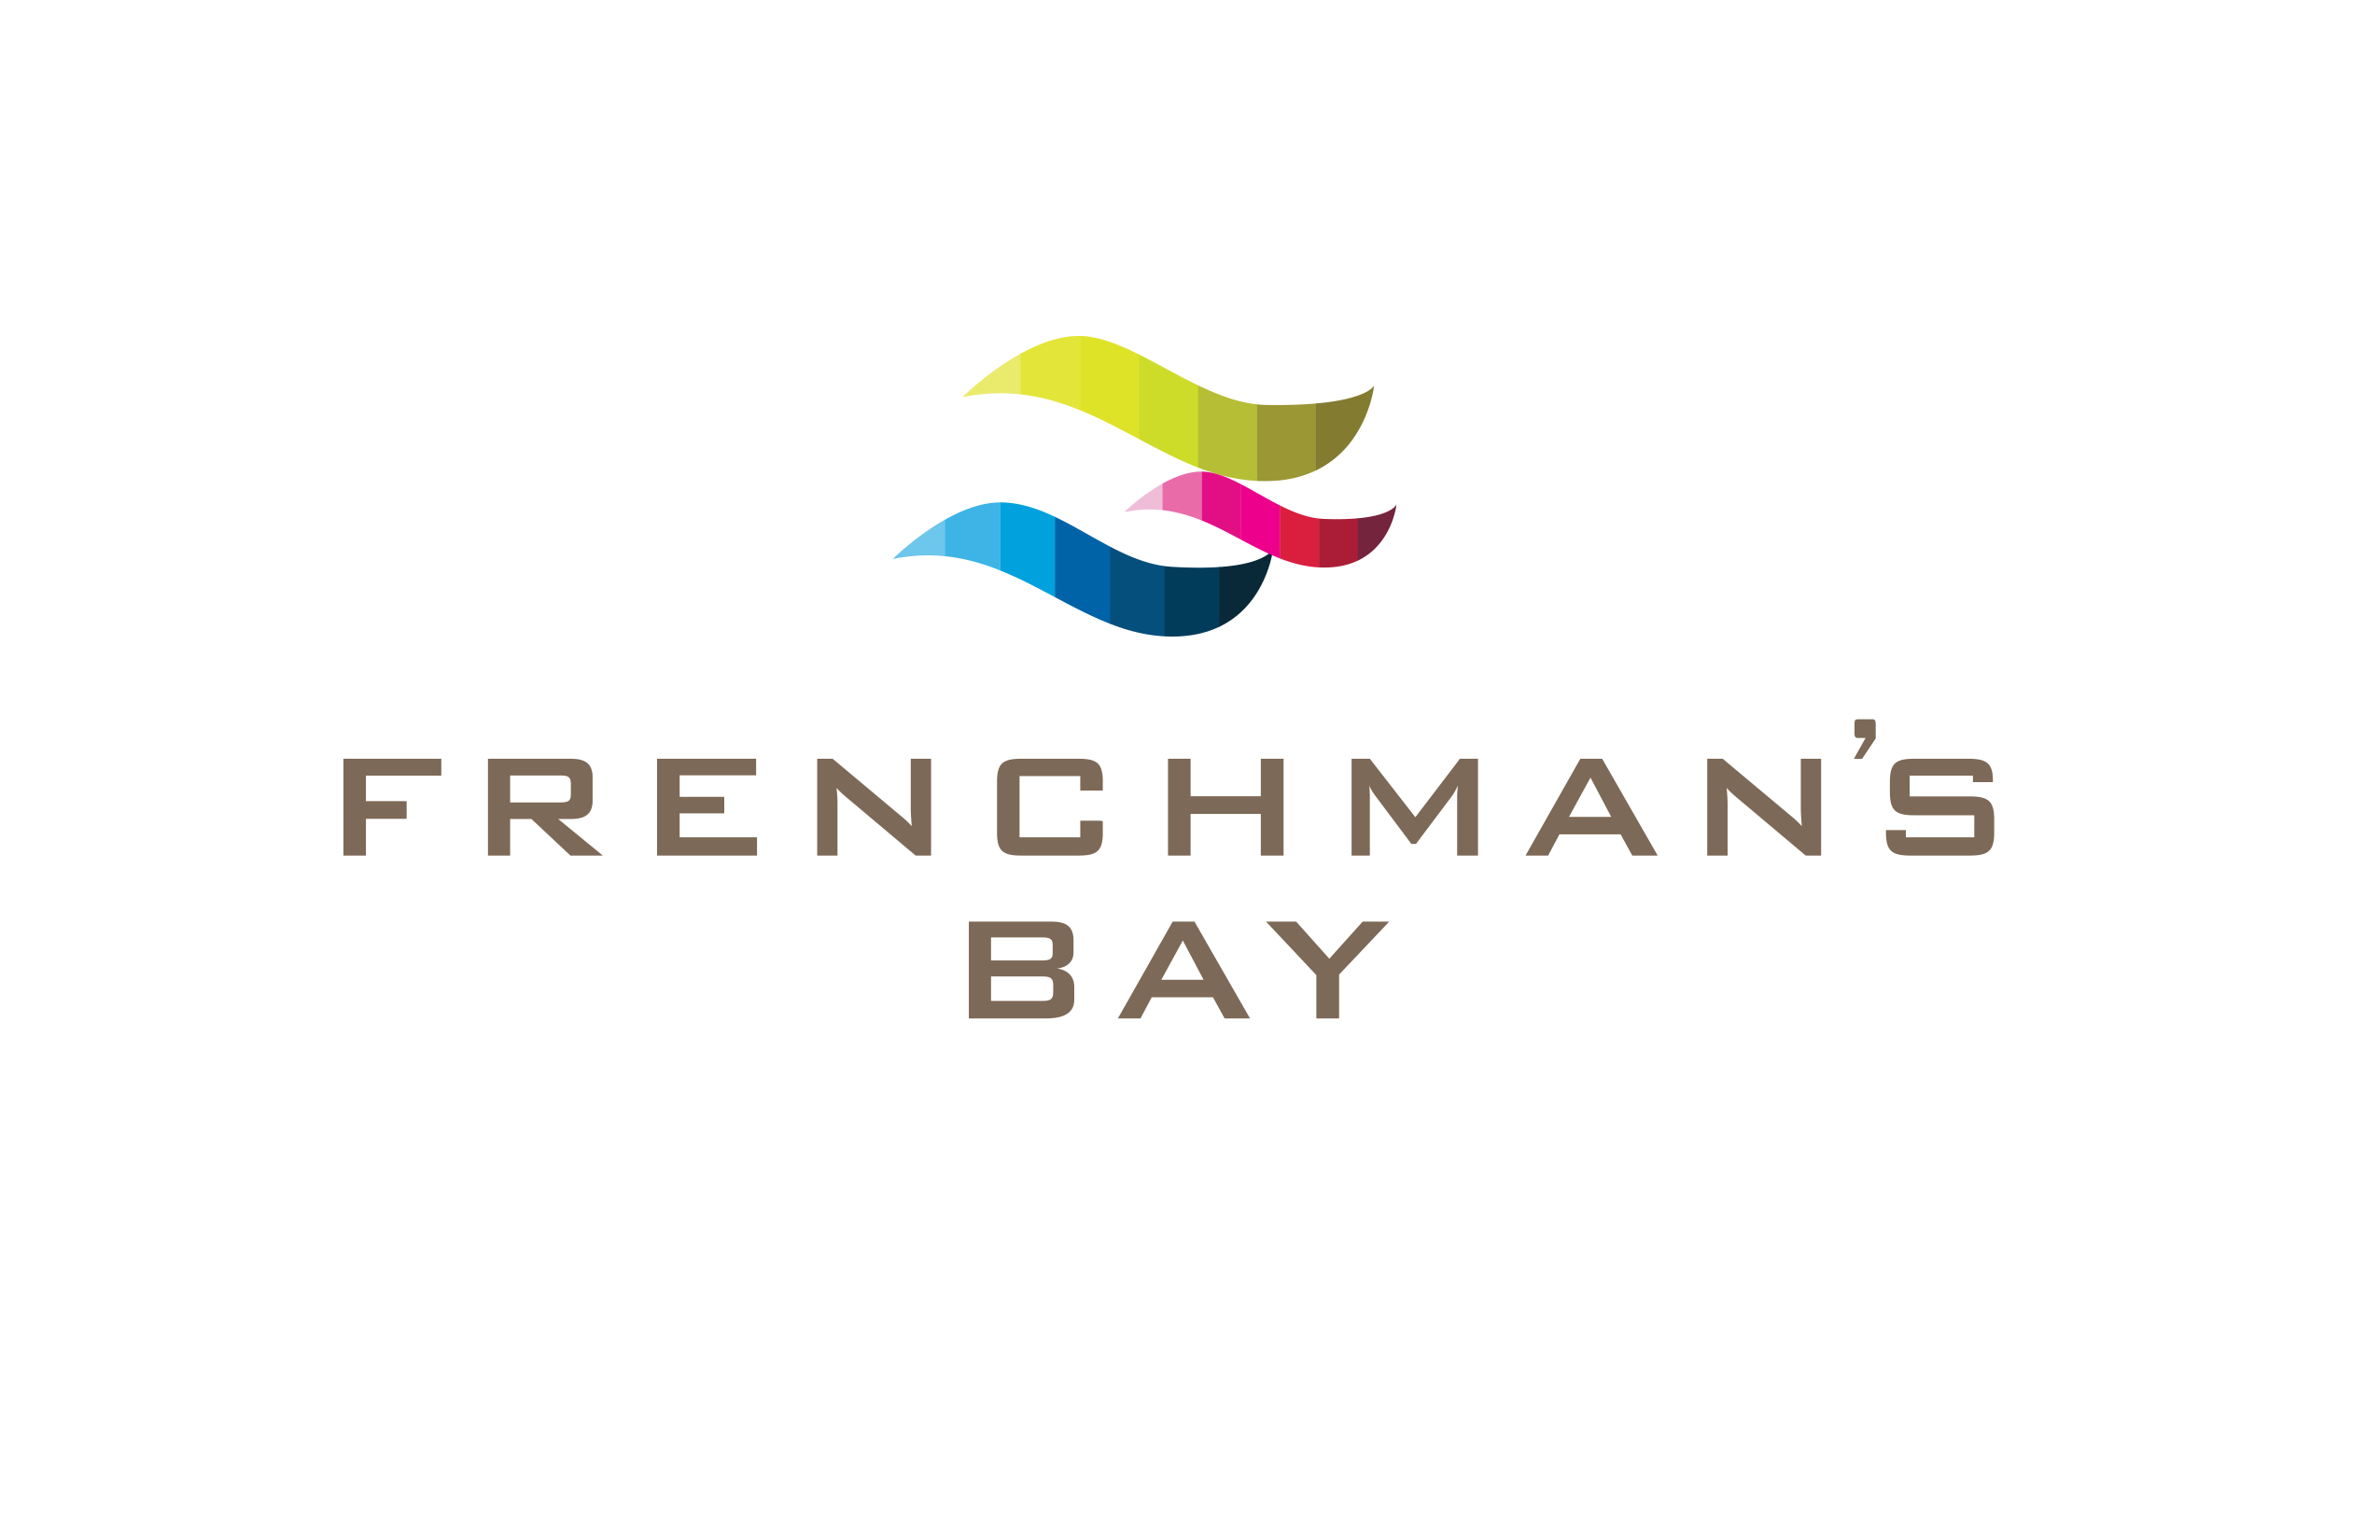 Low Rise, Madison Homes, Frenchman's Bay, Logo